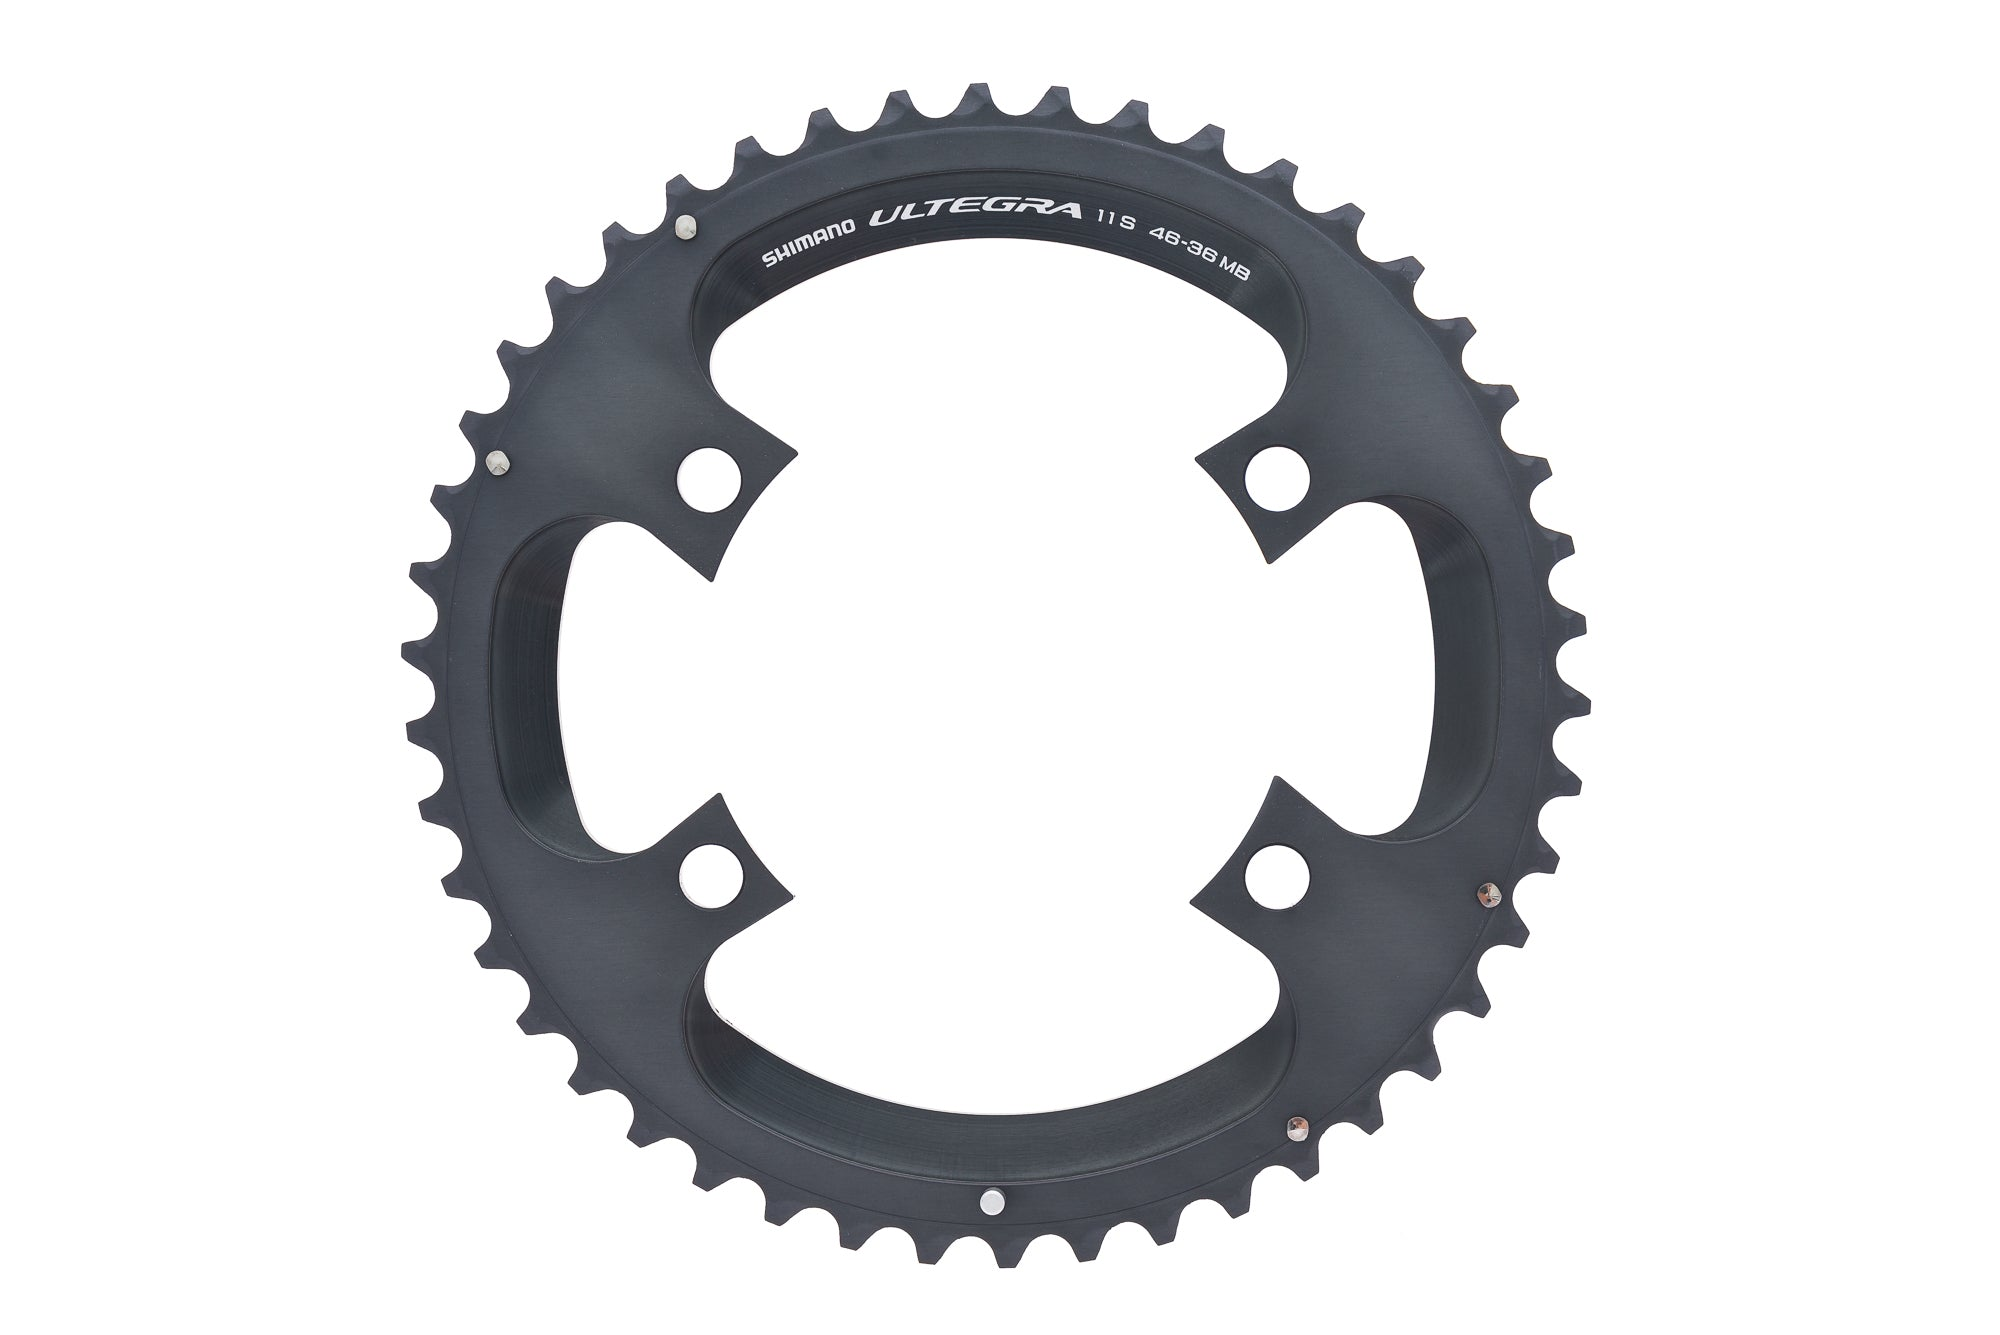 Shimano Ultegra FC-6800 Chainring 46T 11 Speed 110mm BCD drive side